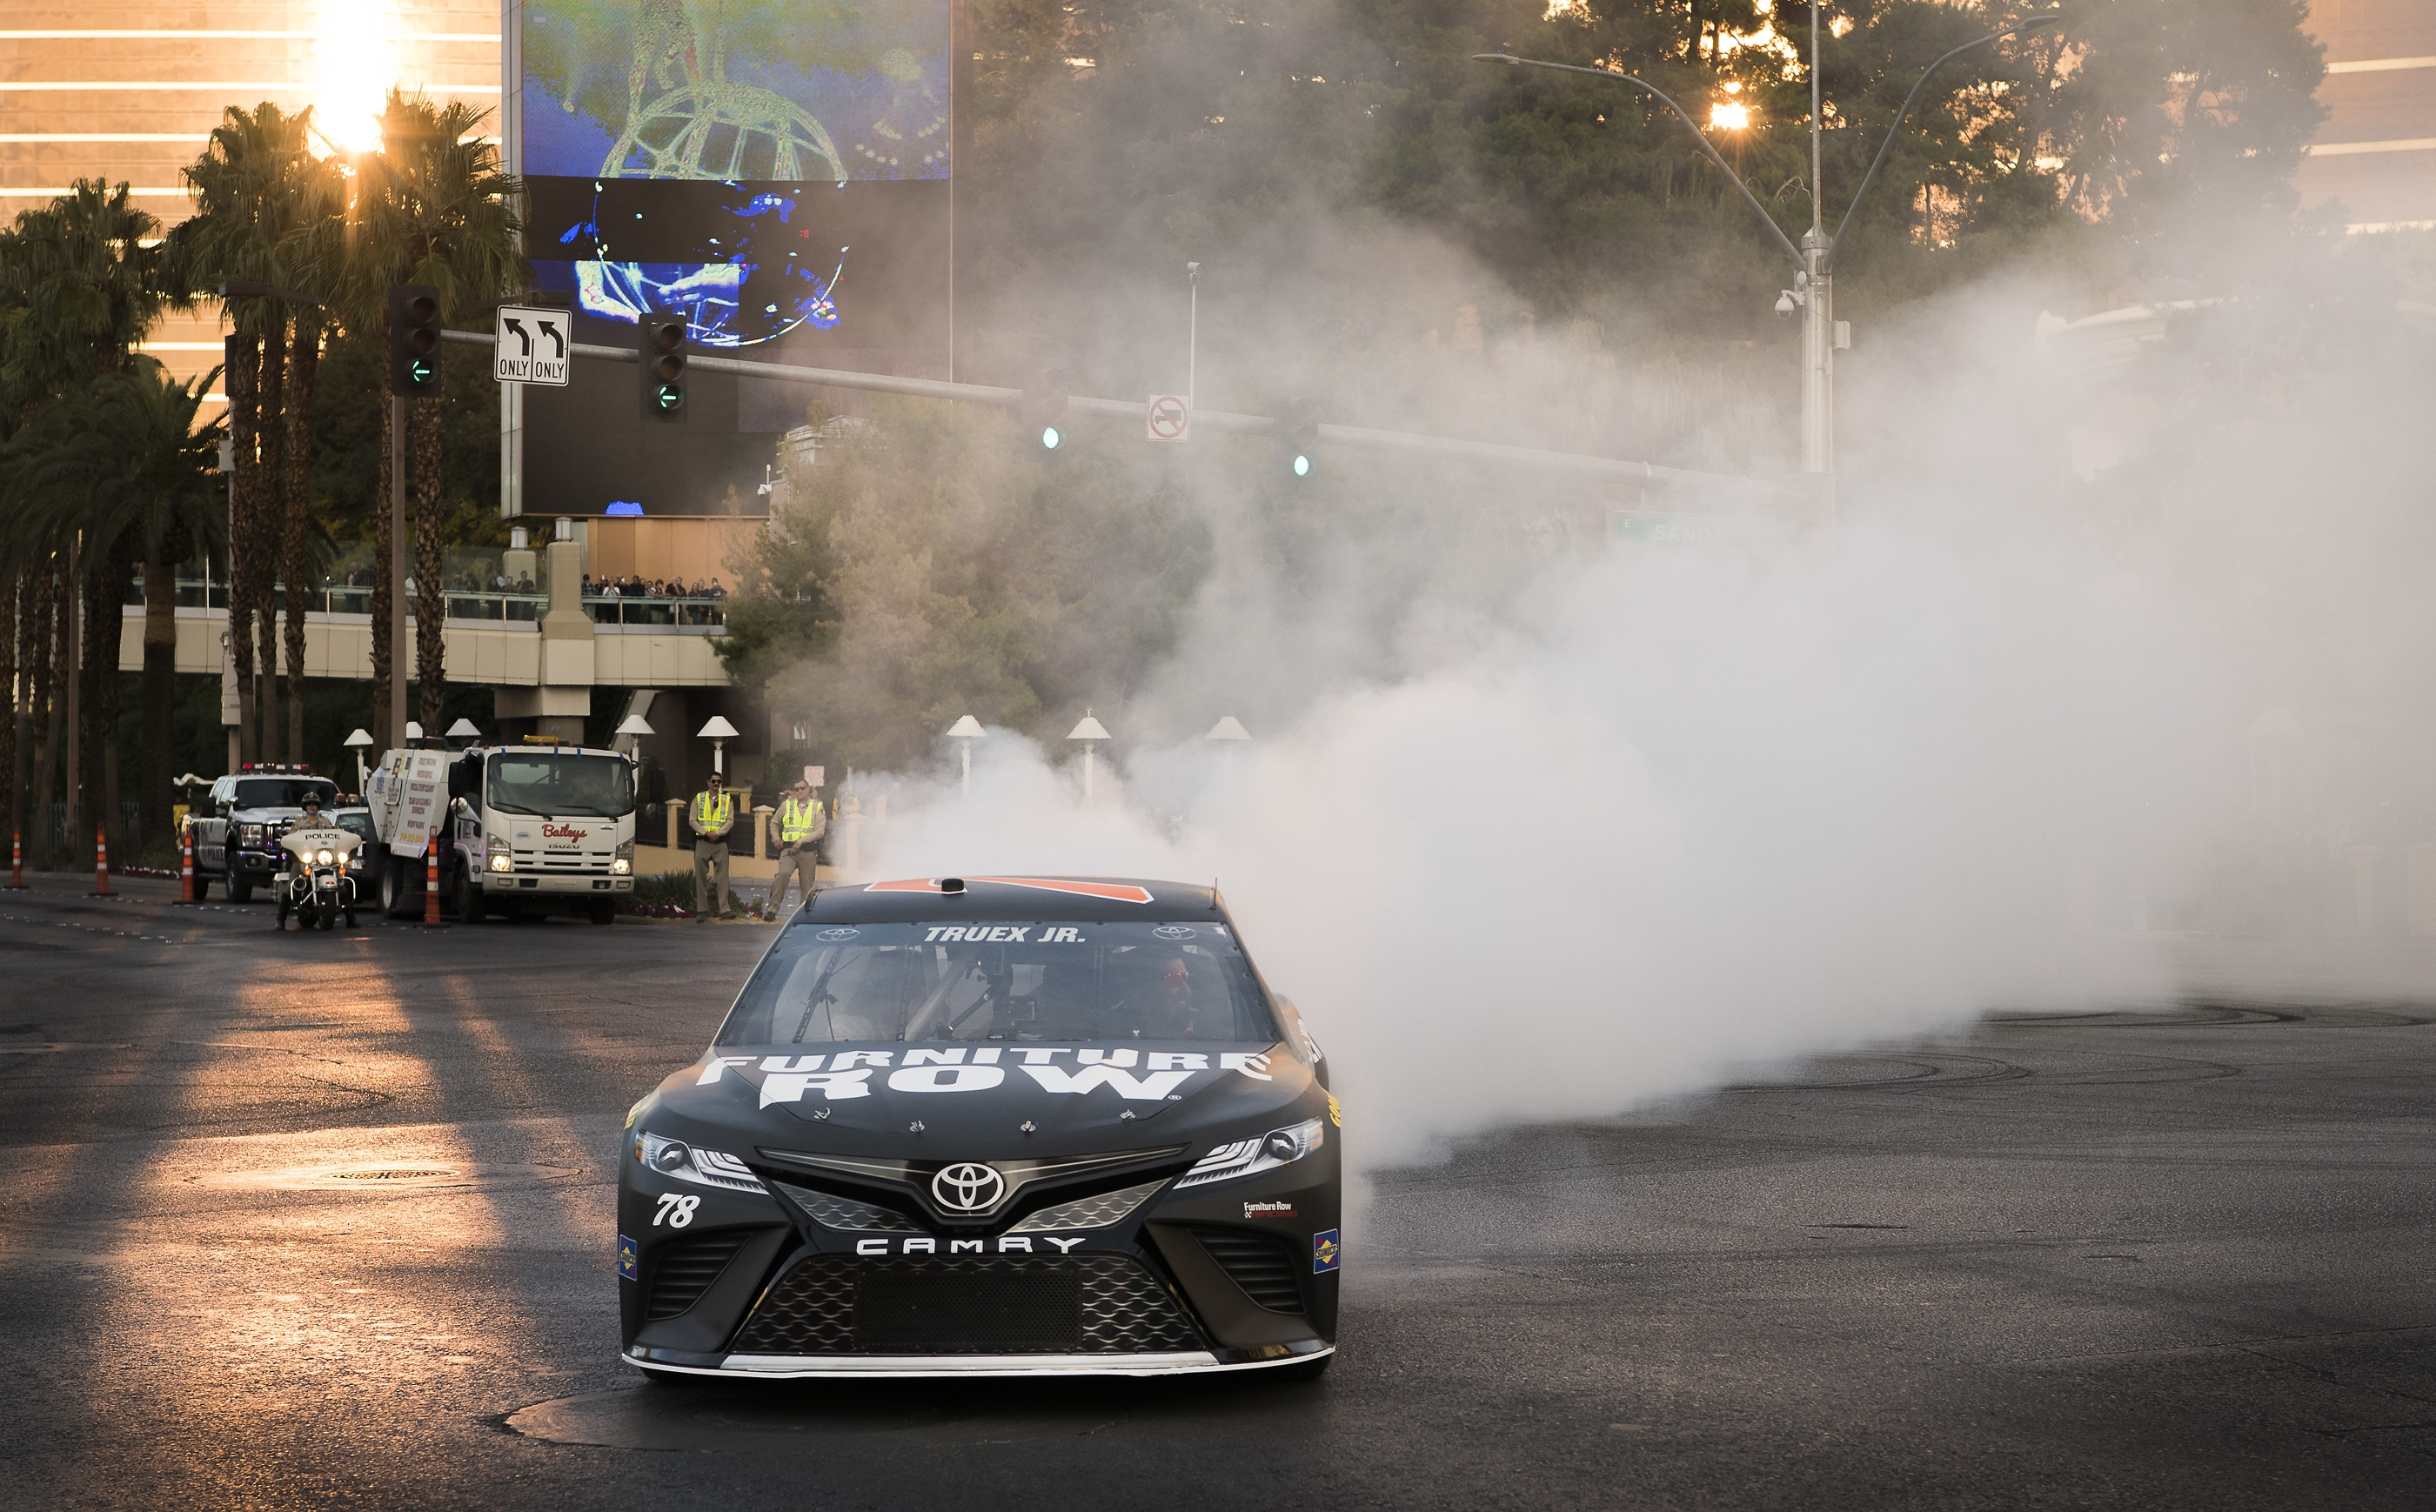 Driver Martin Truex, Jr., in his #78 Furniture Row Toyota Camry, leaves a trail a white smoke after burning out at the NASCAR Victory Lap on the Las Vegas Strip at the intersection of Las Vegas Blvd. and Spring  Mountain Road on Wednesday, Nov. 29, 2017. CREDIT: Mark Damon/Las Vegas News Bureau